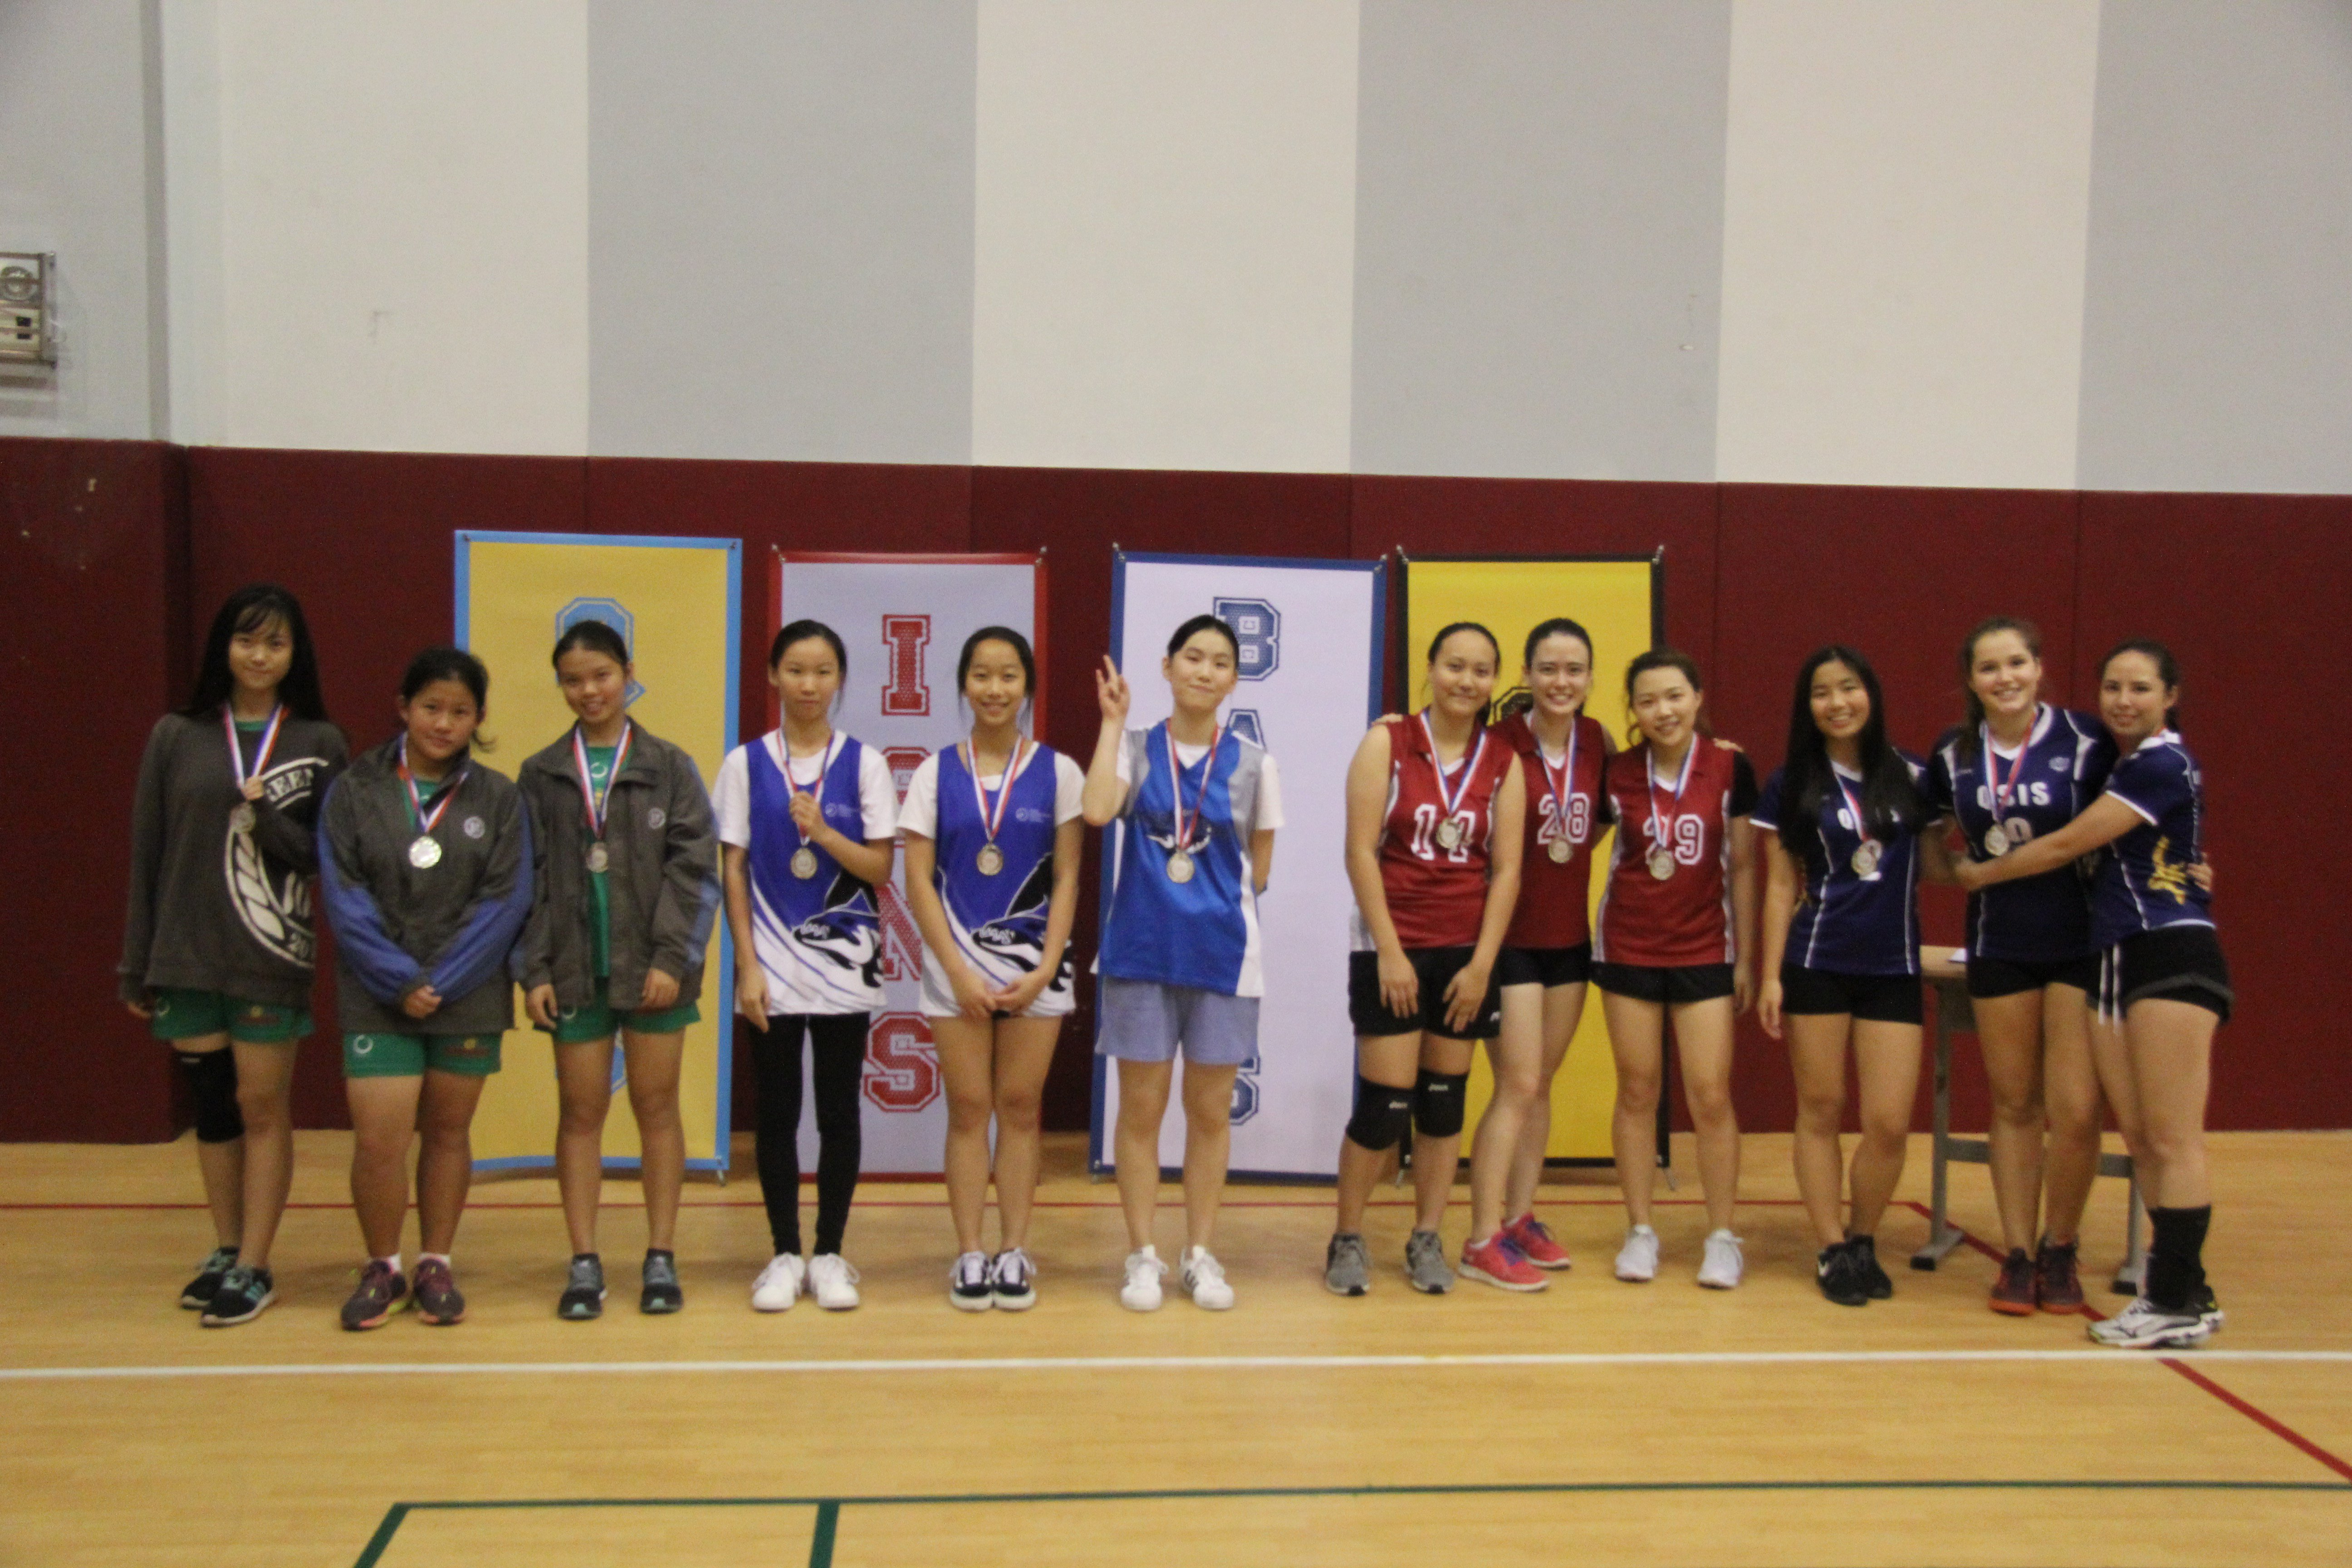 U19 SISAC All-Stars Girls